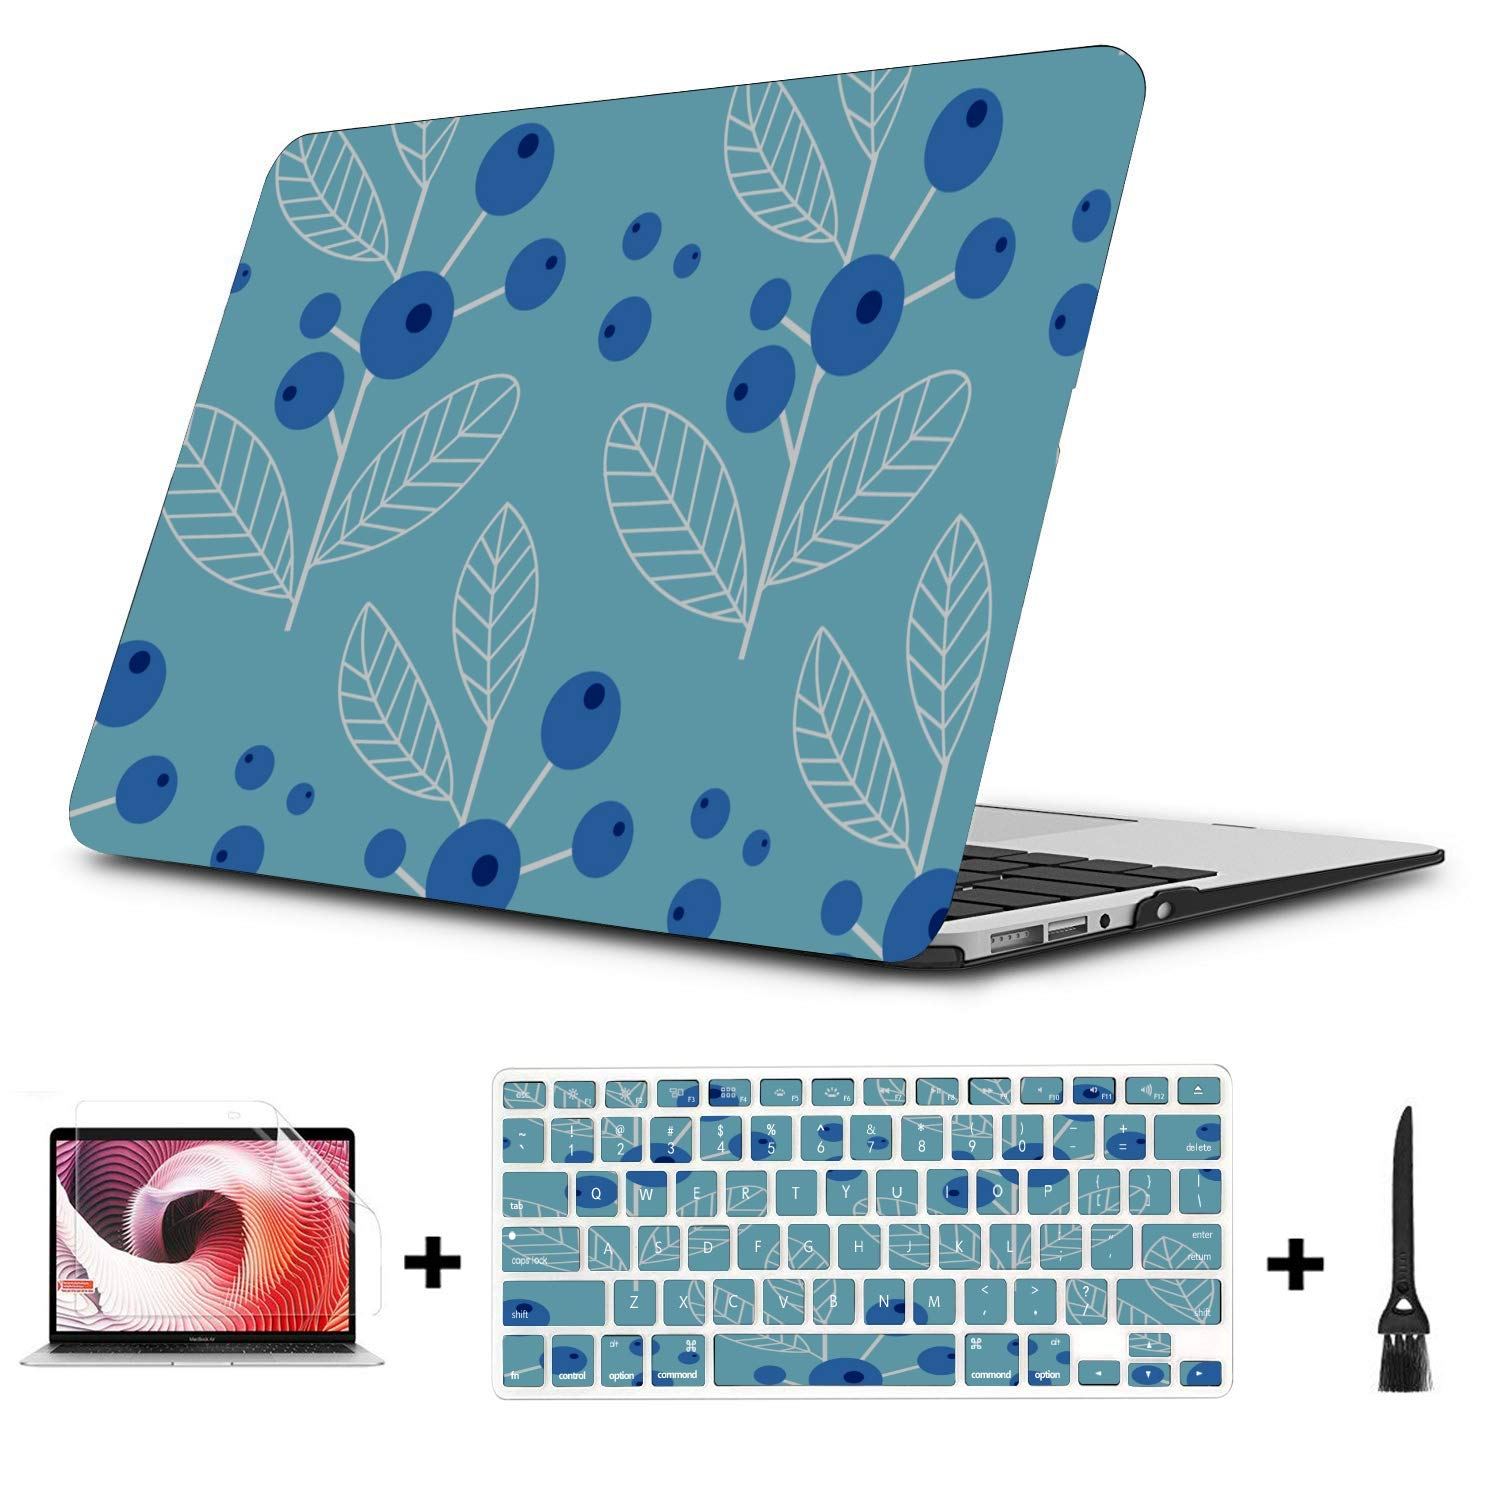 MacBook Accessories Summer Sweet Sour Fruit Blueberry Plastic Hard Shell Compatible Mac Air 11 Pro 13 15 MacBook Air Case A1466 Protection for MacBook 2016-2019 Version